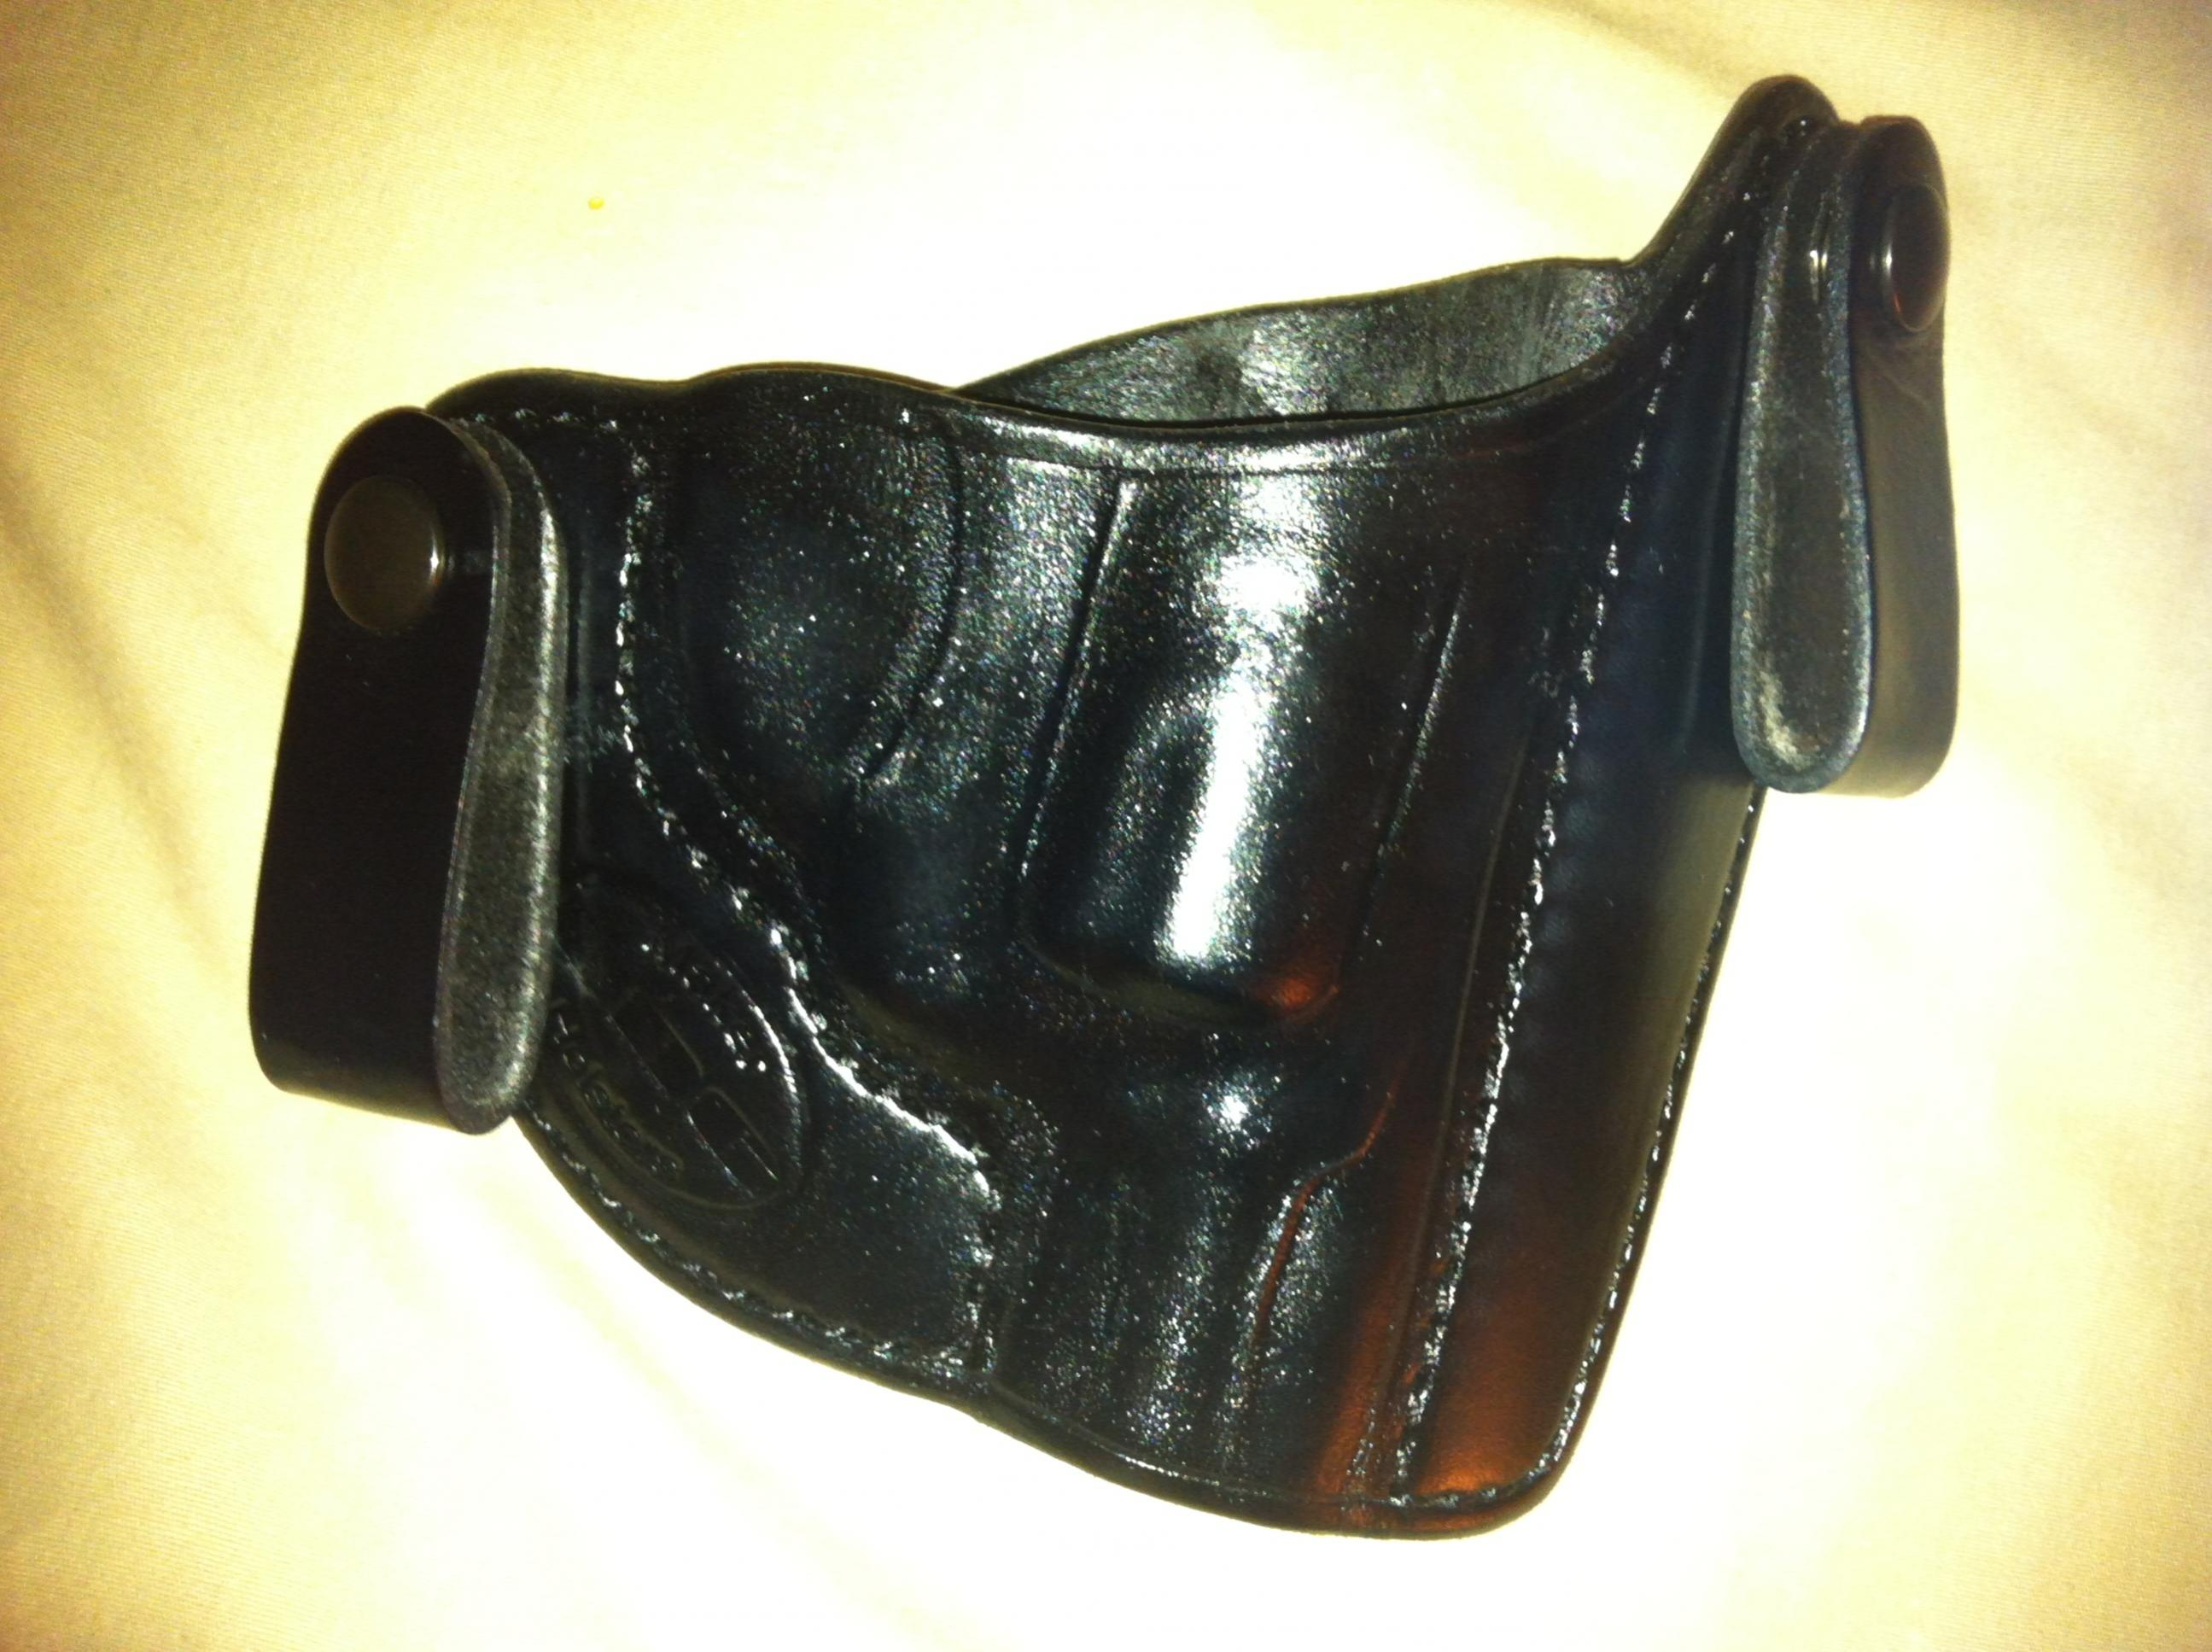 WTS - UBG Canute for S&W J-Frame (IL)-holster1.jpg